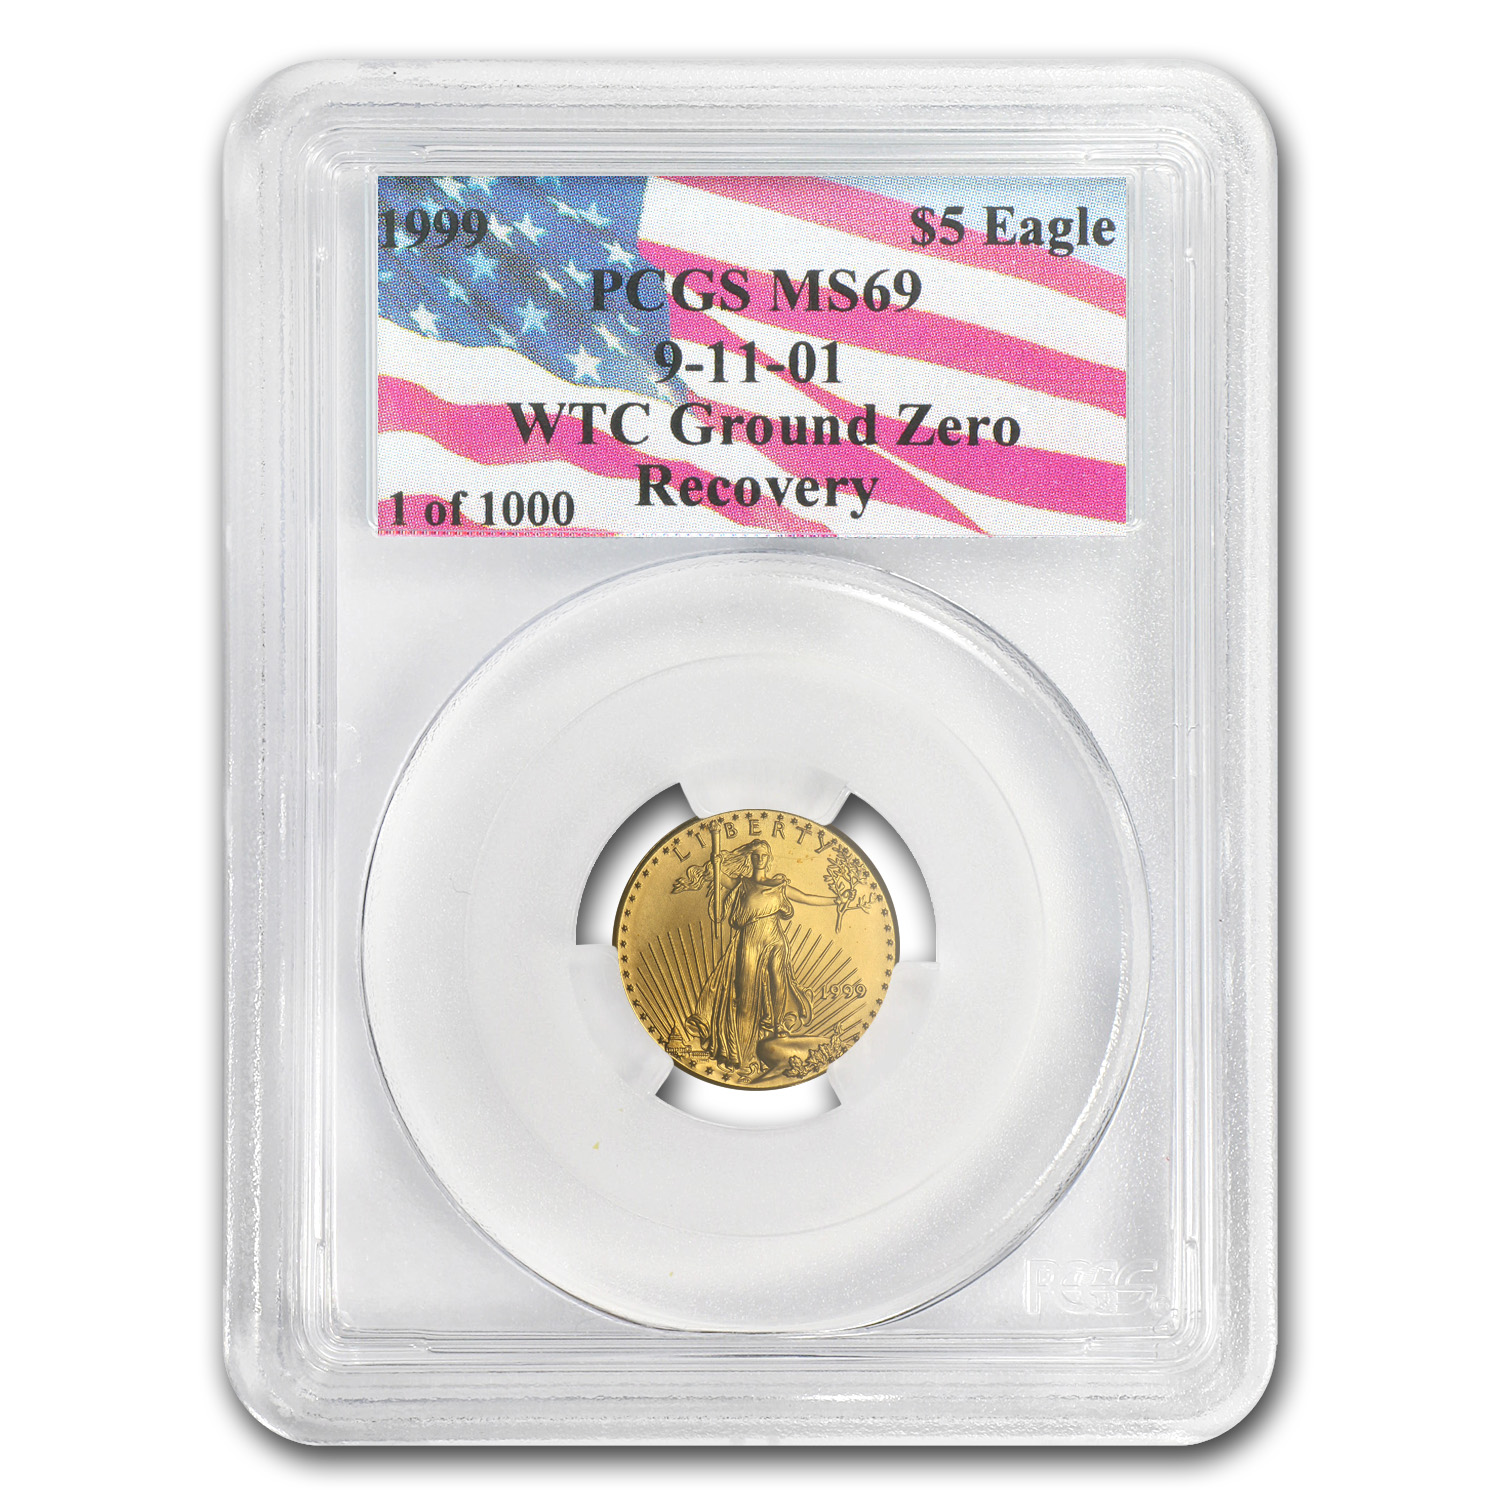 1999 1/10 oz Gold American Eagle MS-69 PCGS (WTC, 1 of 1000)